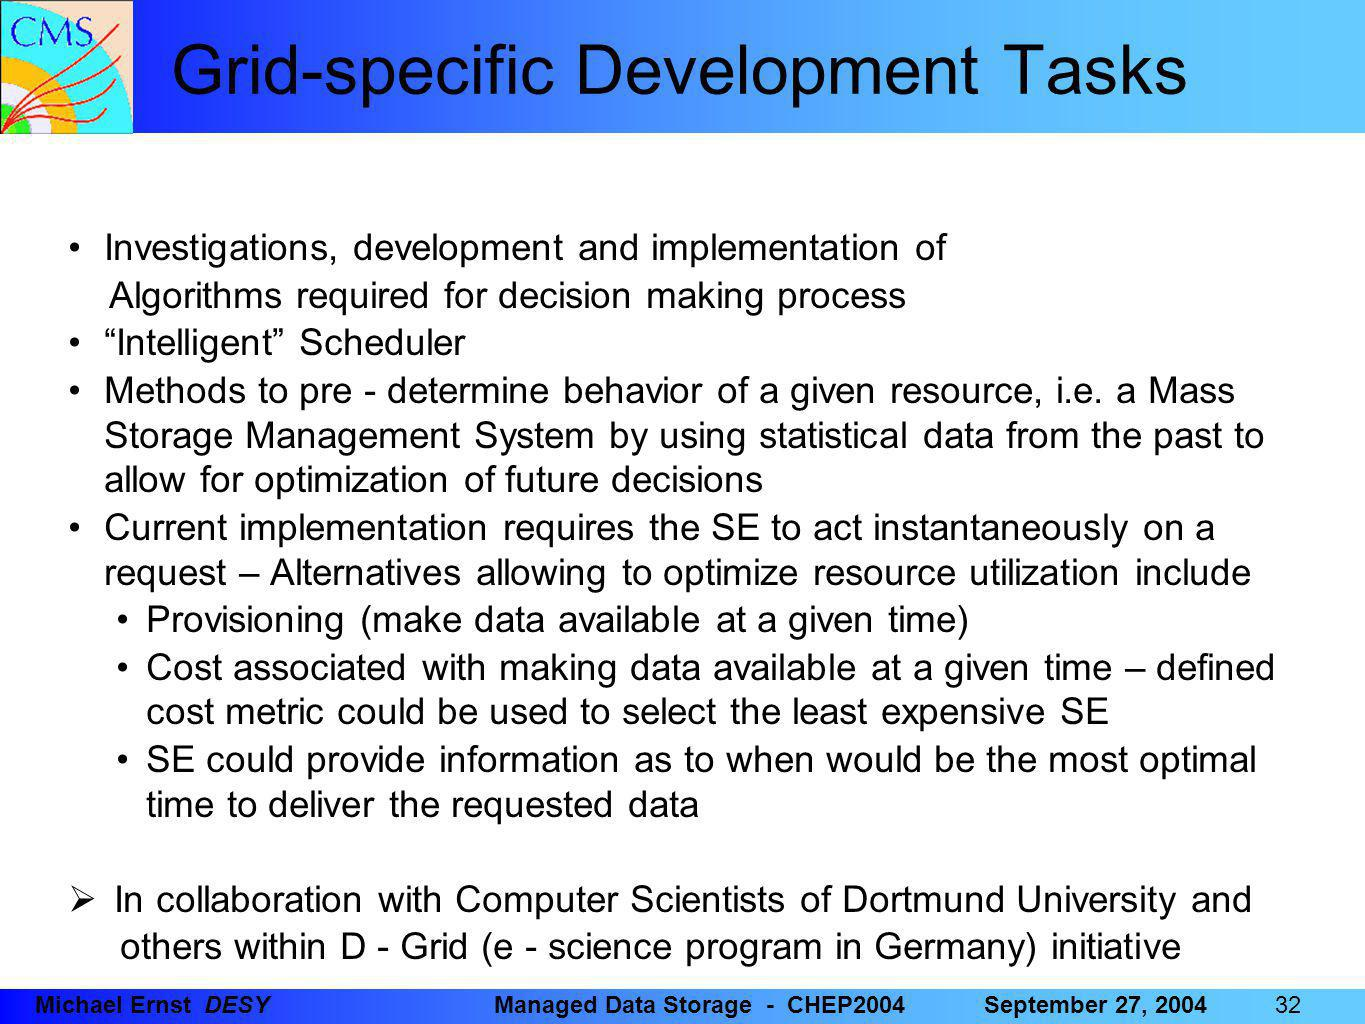 32 Michael Ernst DESYManaged Data Storage - CHEP2004September 27, 2004 Grid-specific Development Tasks Investigations, development and implementation of Algorithms required for decision making process Intelligent Scheduler Methods to pre - determine behavior of a given resource, i.e.